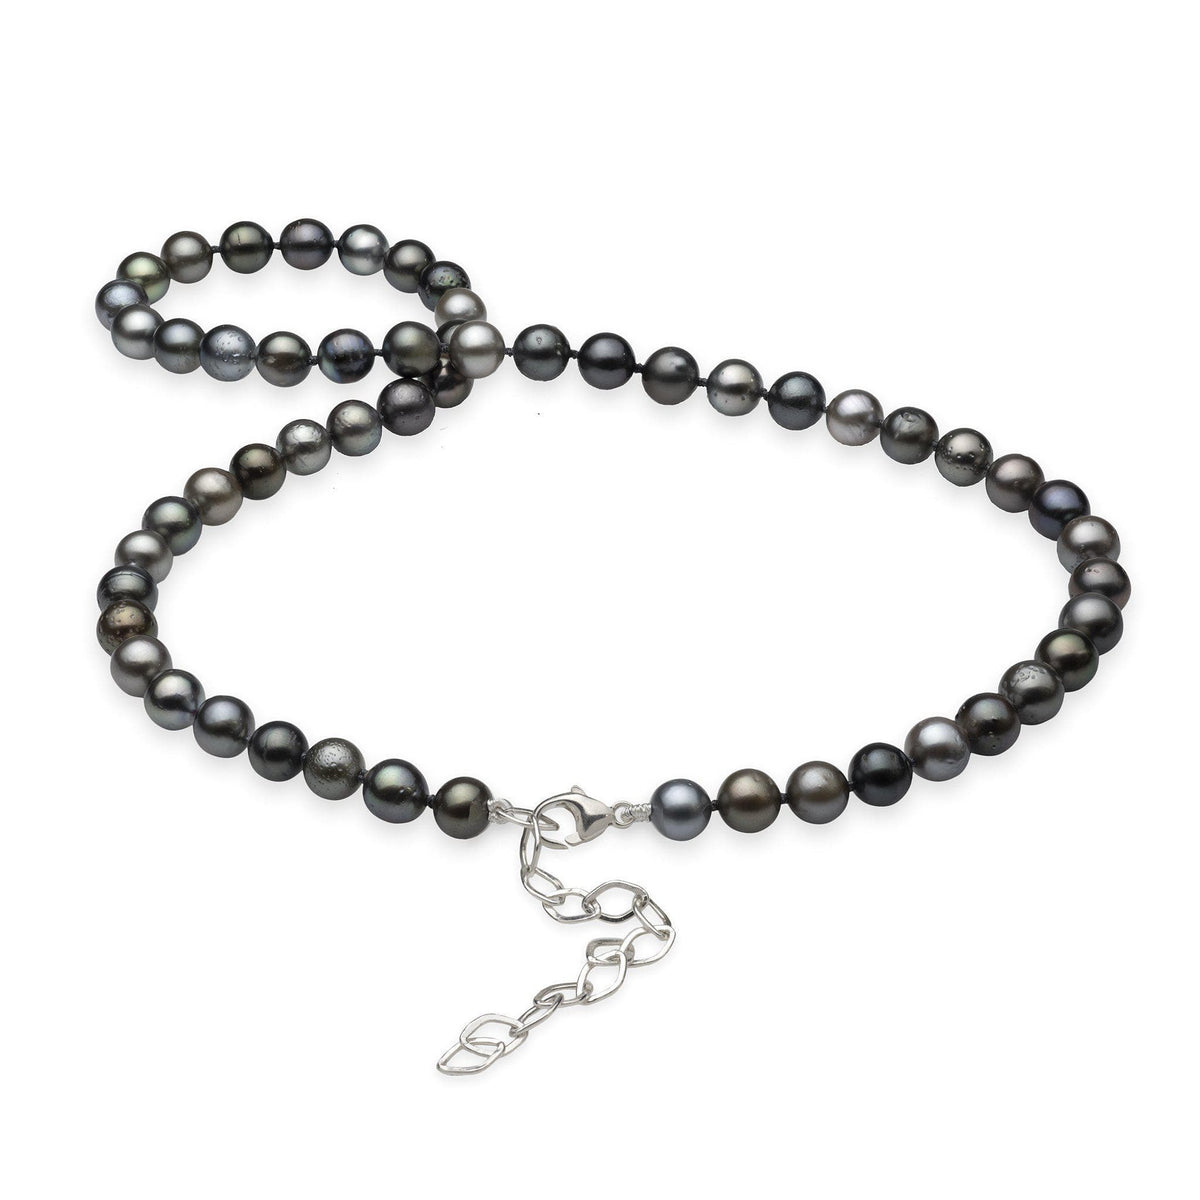 Tahitian Black Pearl Strand in Sterling Silver (7-8mm)